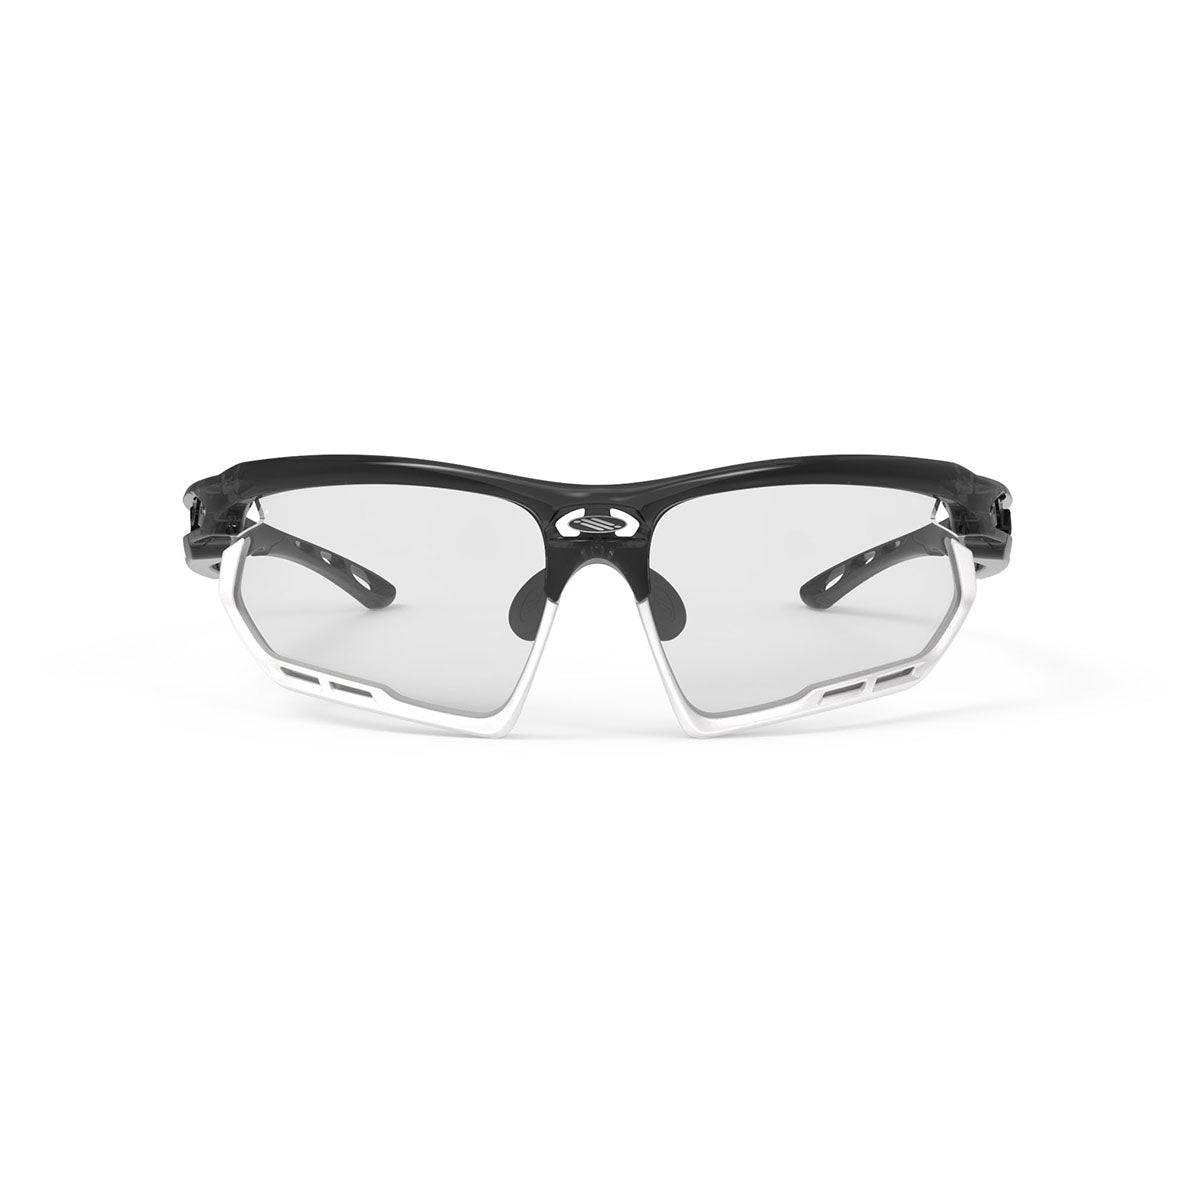 Rudy Project - Fotonyk - frame color: Crystal Graphite - lens color: ImpactX-2 Photochromic Clear to Black - Bumper Color: White - photo angle: Front View Variant Hover Image